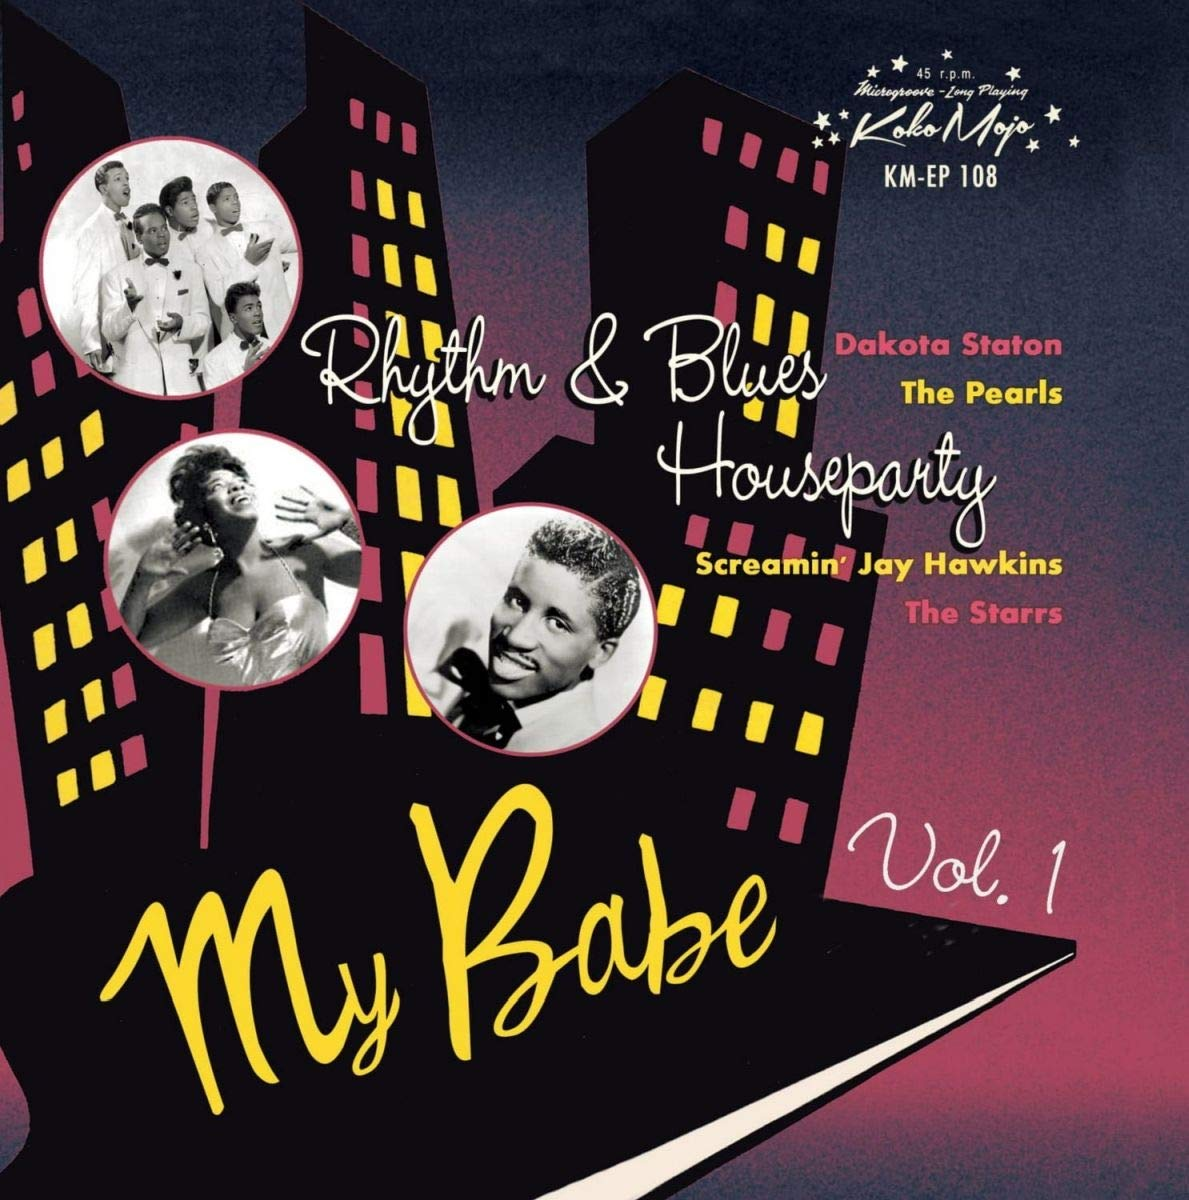 Various Artists - My Babe: Rhythm & Blues House Party Vol 1 [7''] (limited to 500) - Urban Vinyl | Records, Headphones, and more.